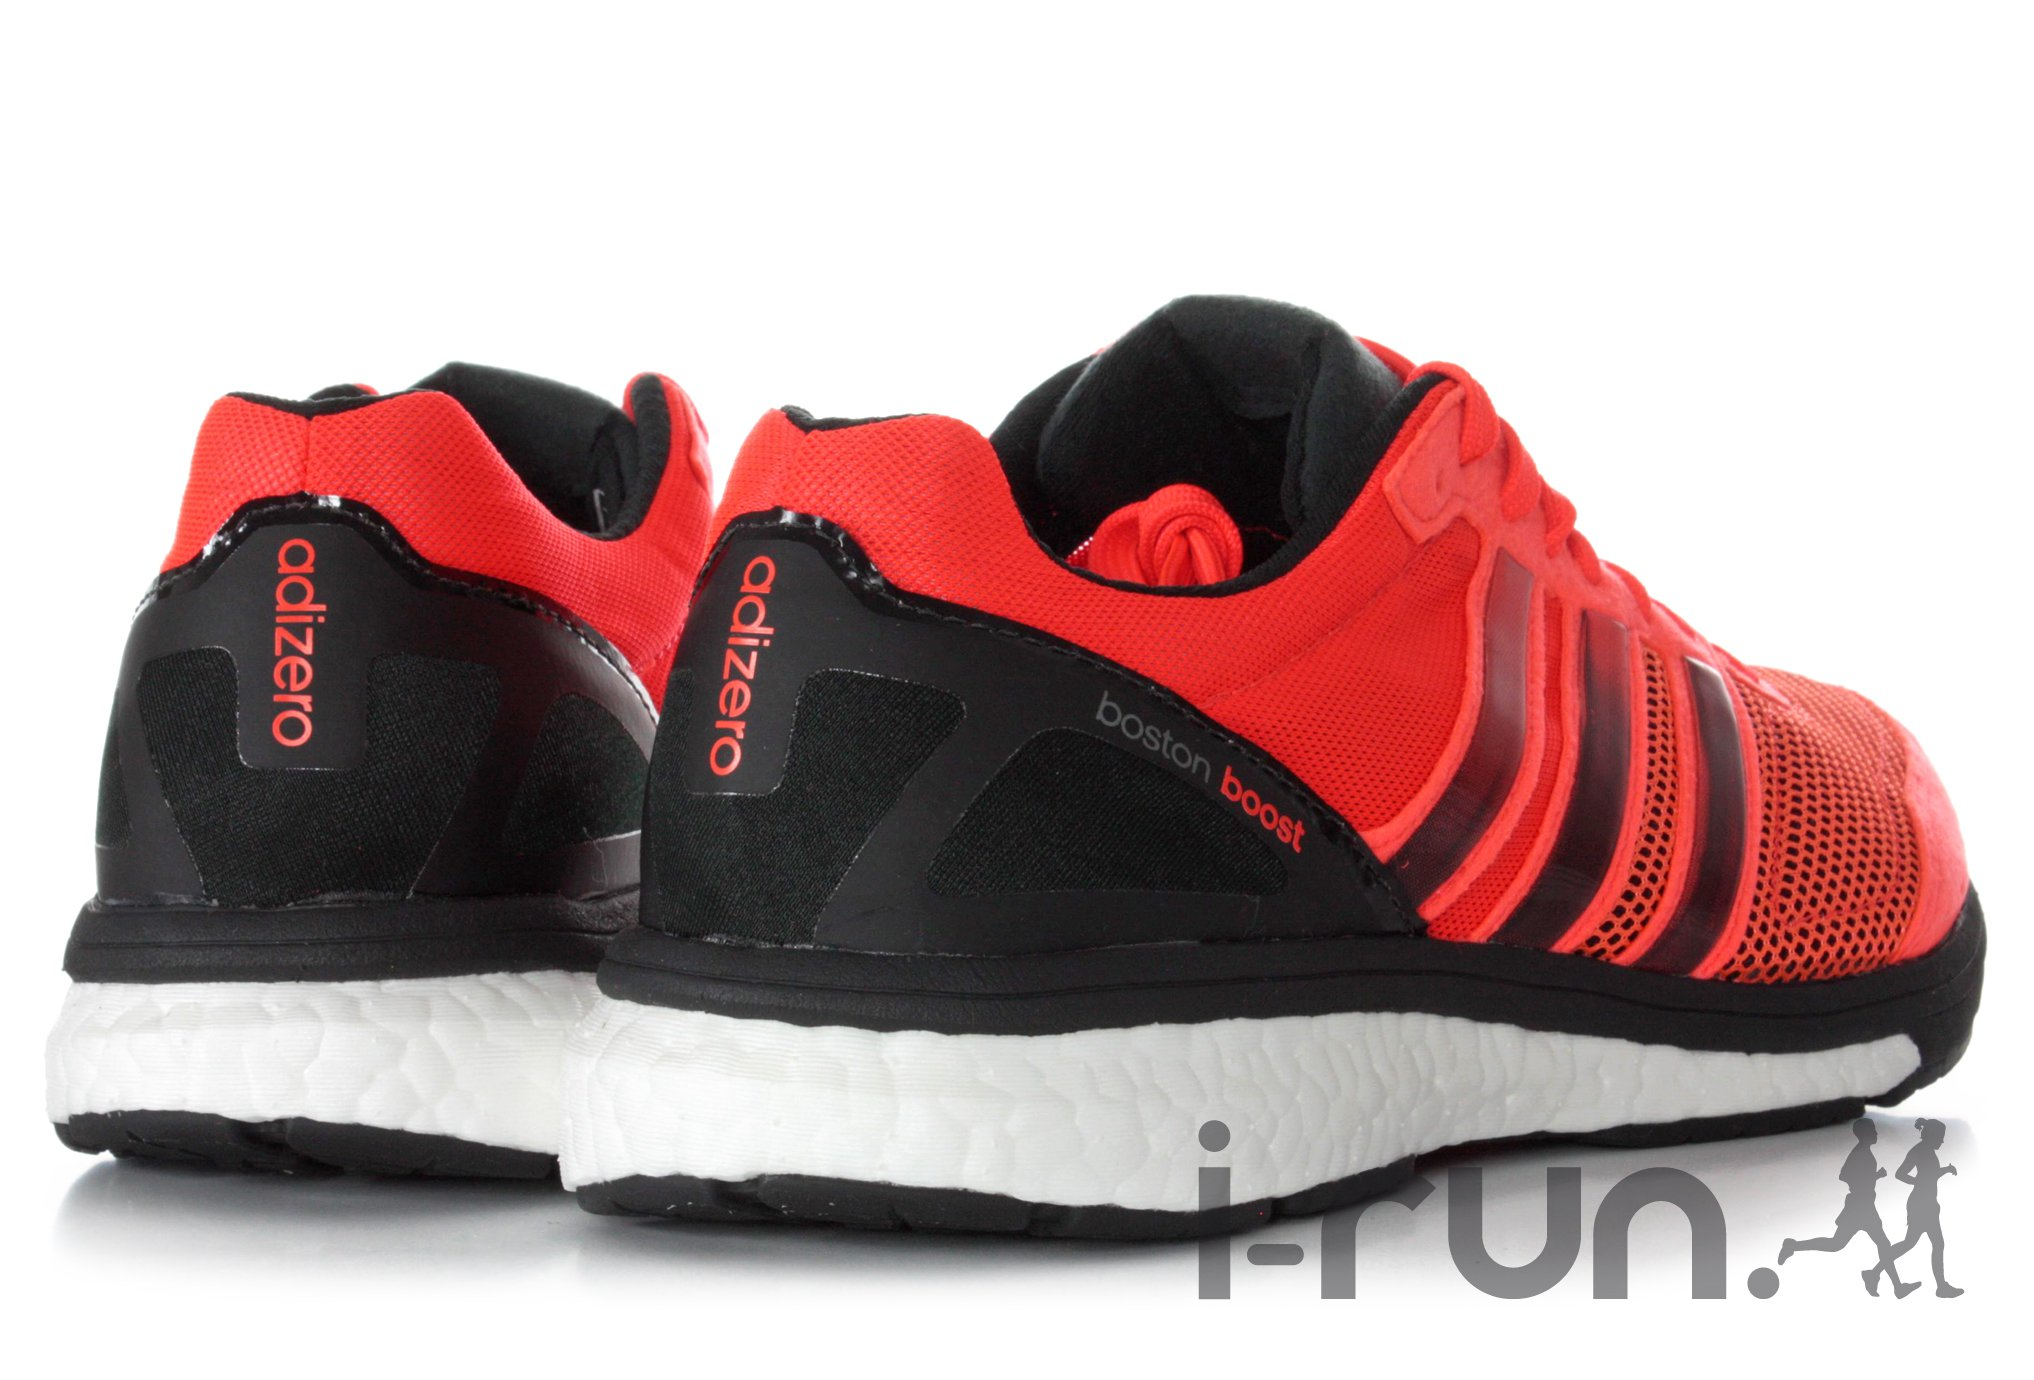 adidas boston 5 homme